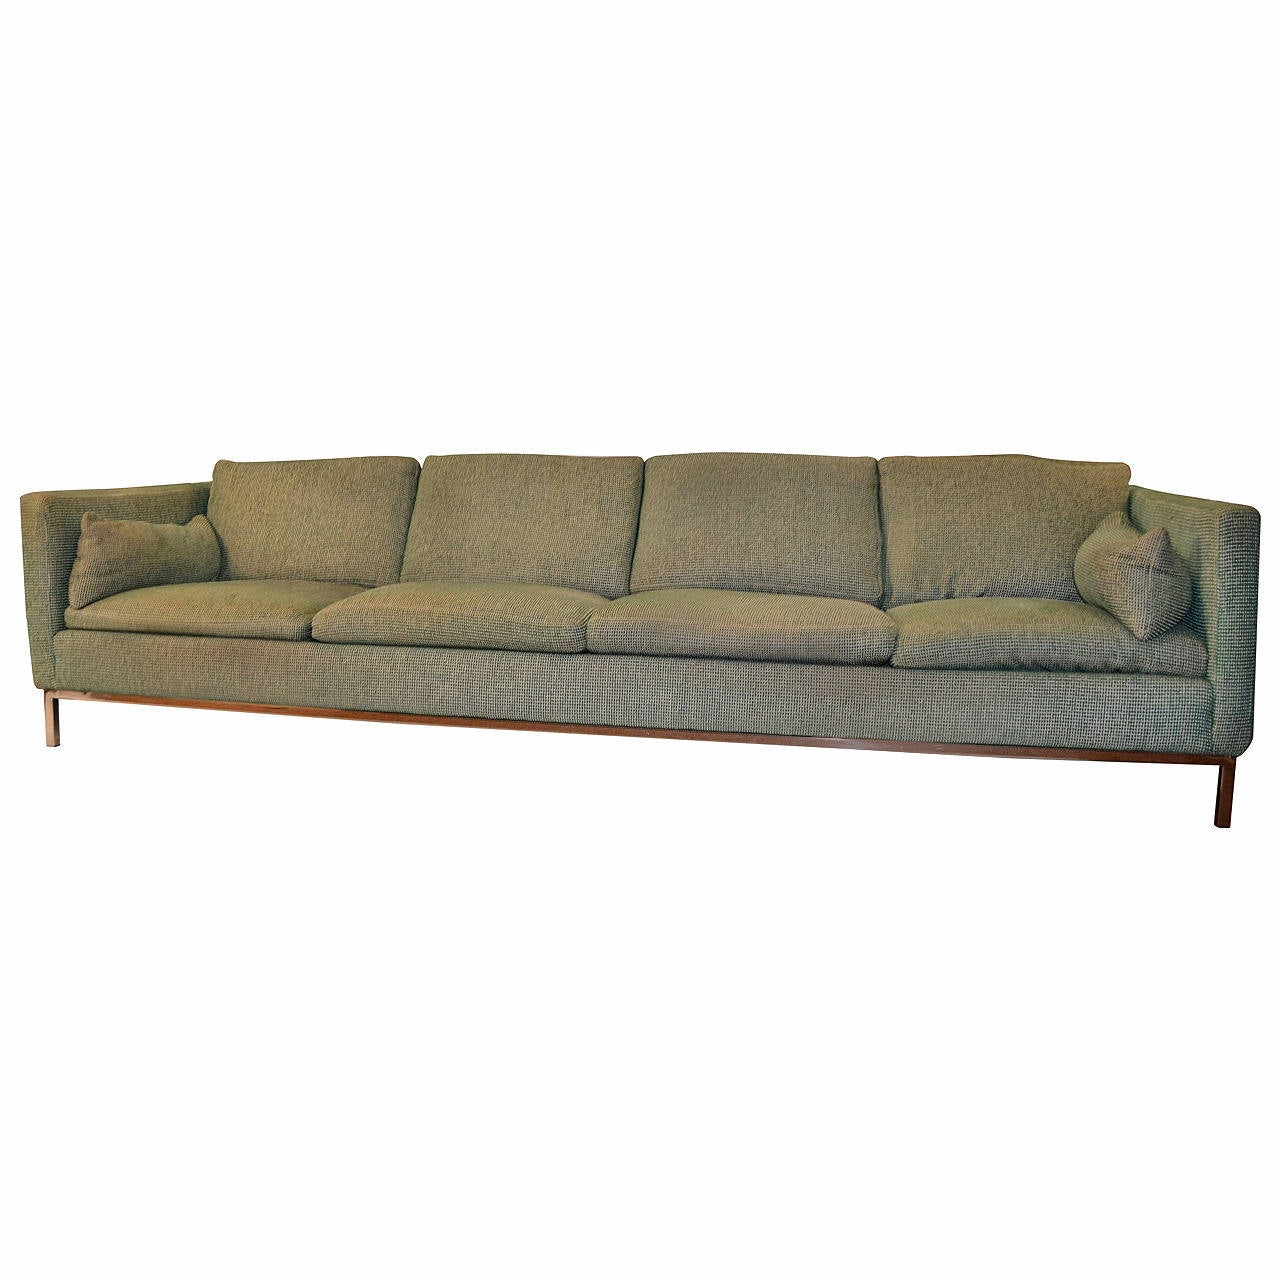 Popular 225 list extra long sofa for Long couches for sale